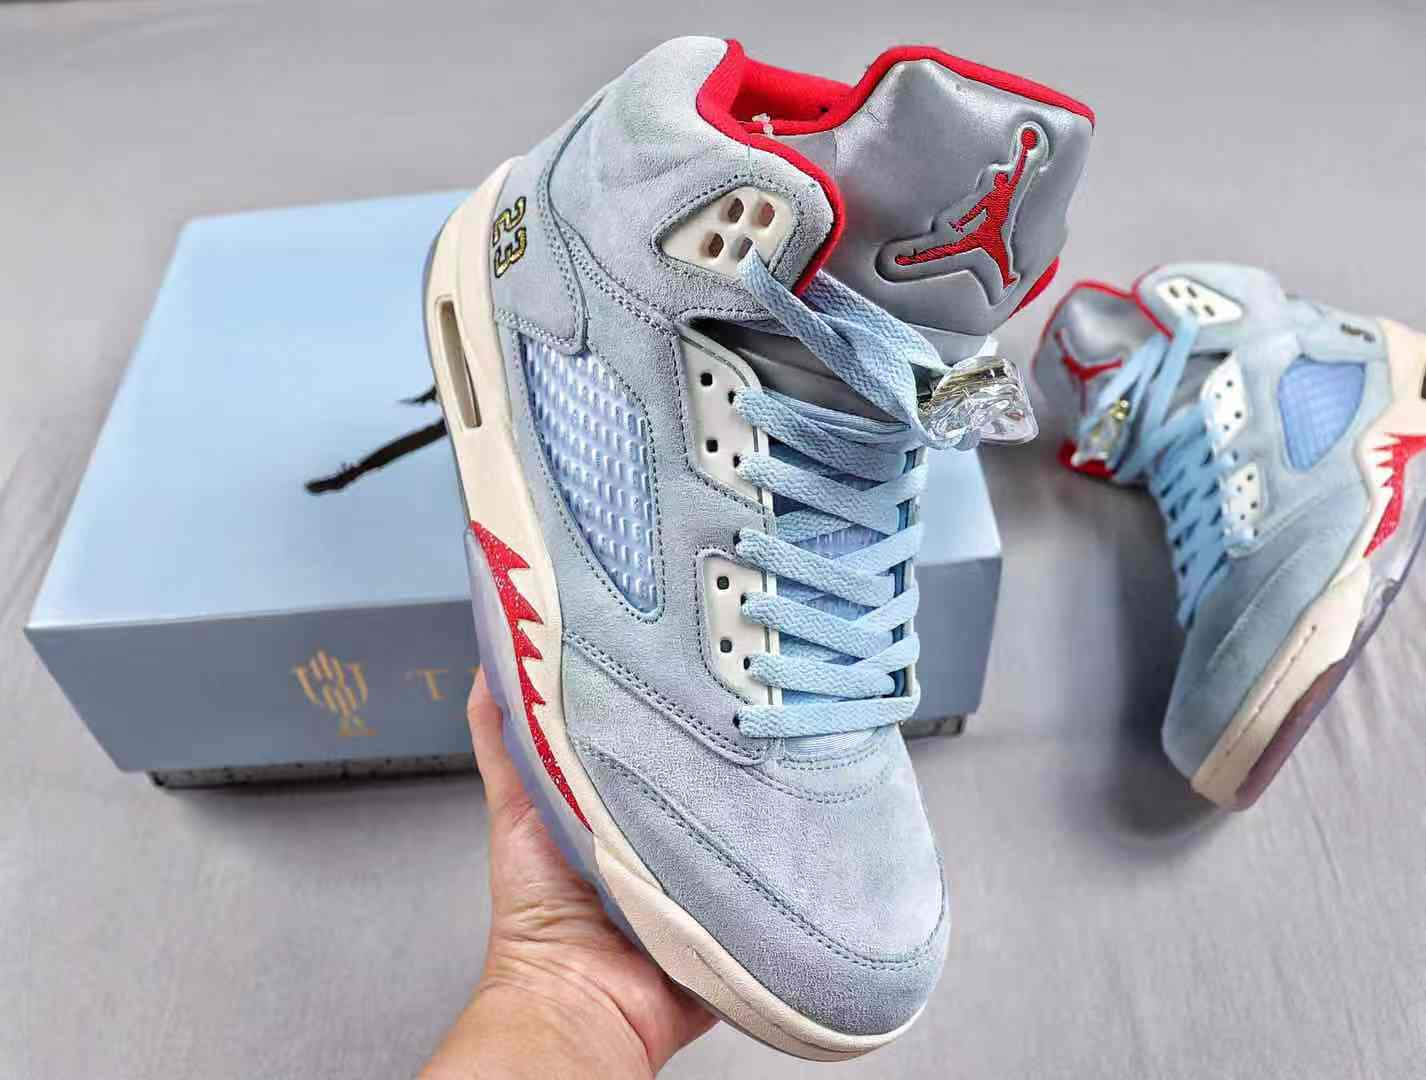 Trophy Room x Air Jordan 5 Retro Ice Blue CI1899-400